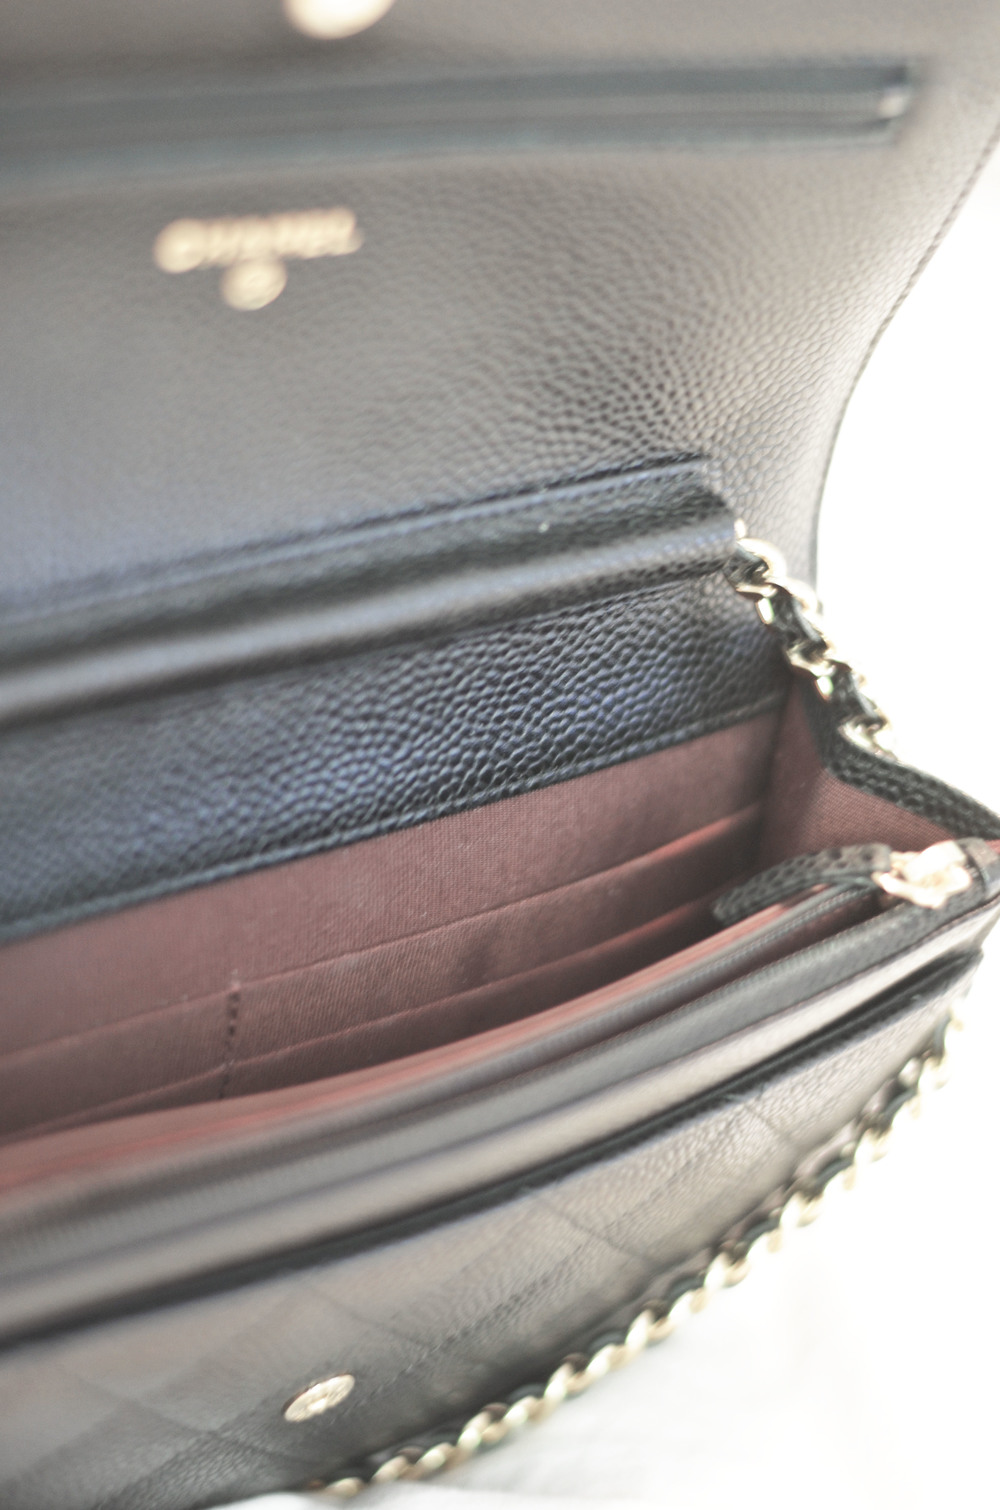 38708dd9c869 THE BAG DETAILS | As you can see the interior of the bags are a  burgundy/wine shade. Great as any dirt marks would be a bit more difficult  to spot.